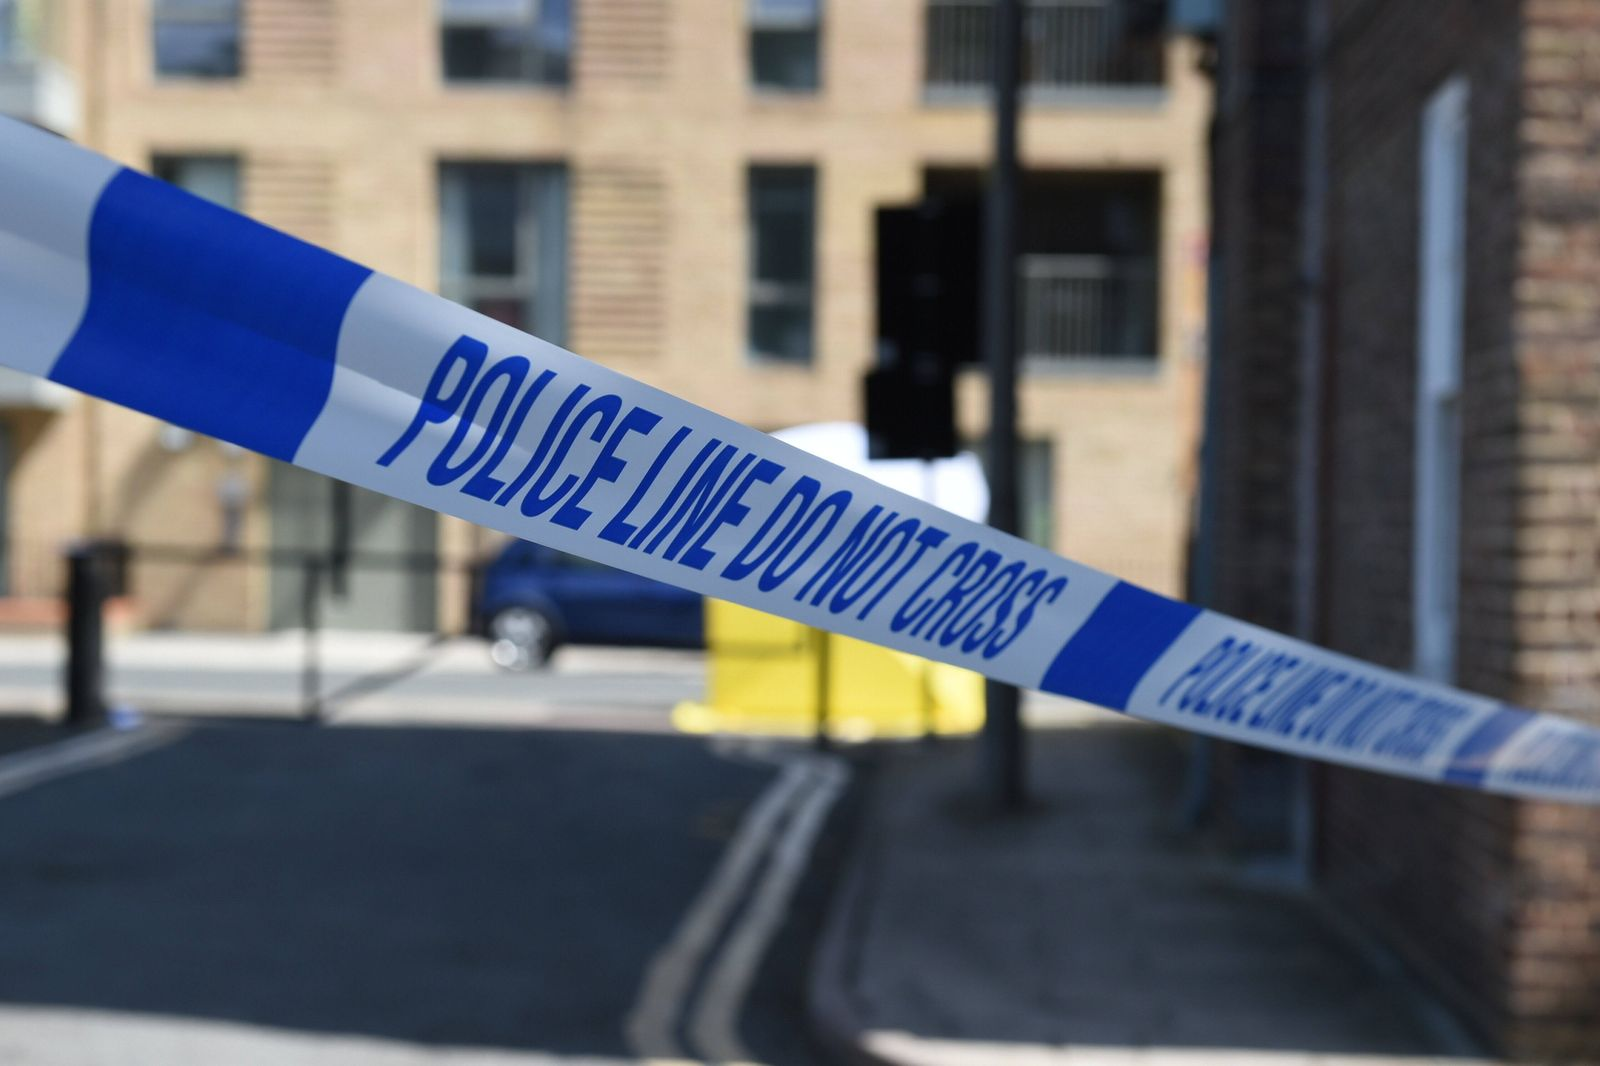 . 12/07/2020. London, United Kingdom. Black Prince Estate stabbing. Police and forensics officers can be seen loocking